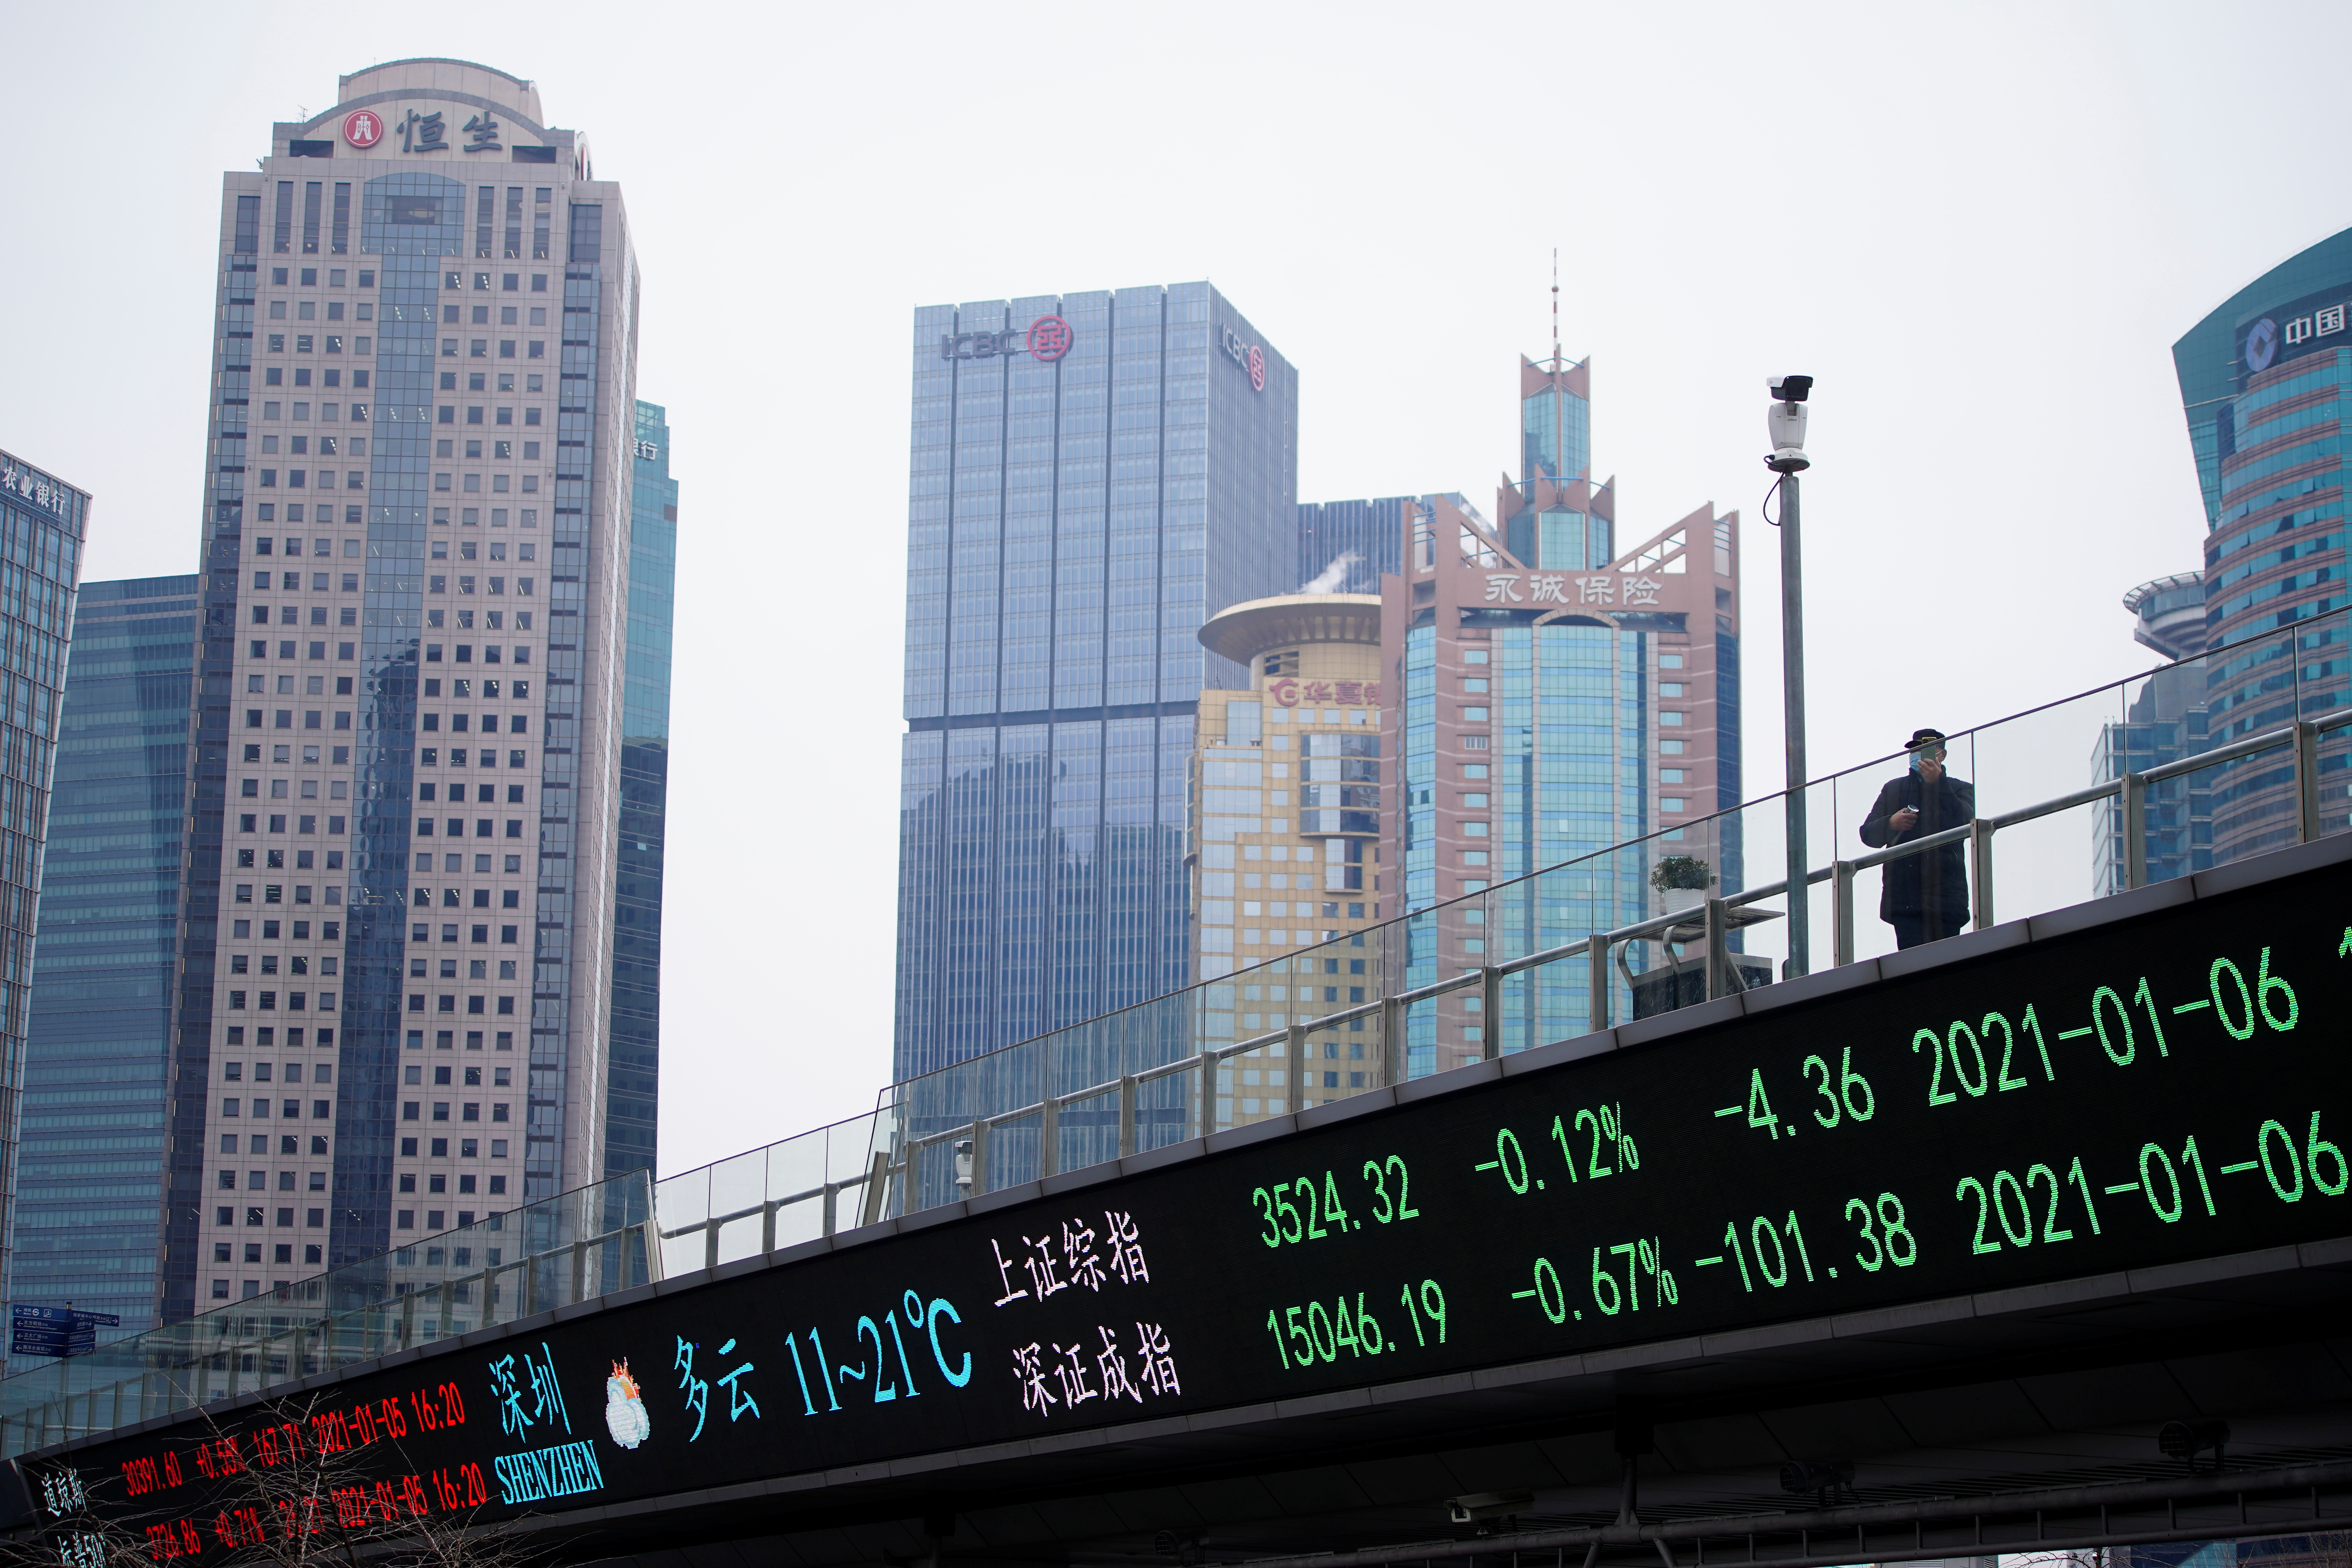 A man wearing a face mask, following the coronavirus disease (COVID-19) outbreak, stands on an overpass with an electronic board showing Shanghai and Shenzhen stock indexes, at the Lujiazui financial district in Shanghai, China January 6, 2021. REUTERS/Aly Song